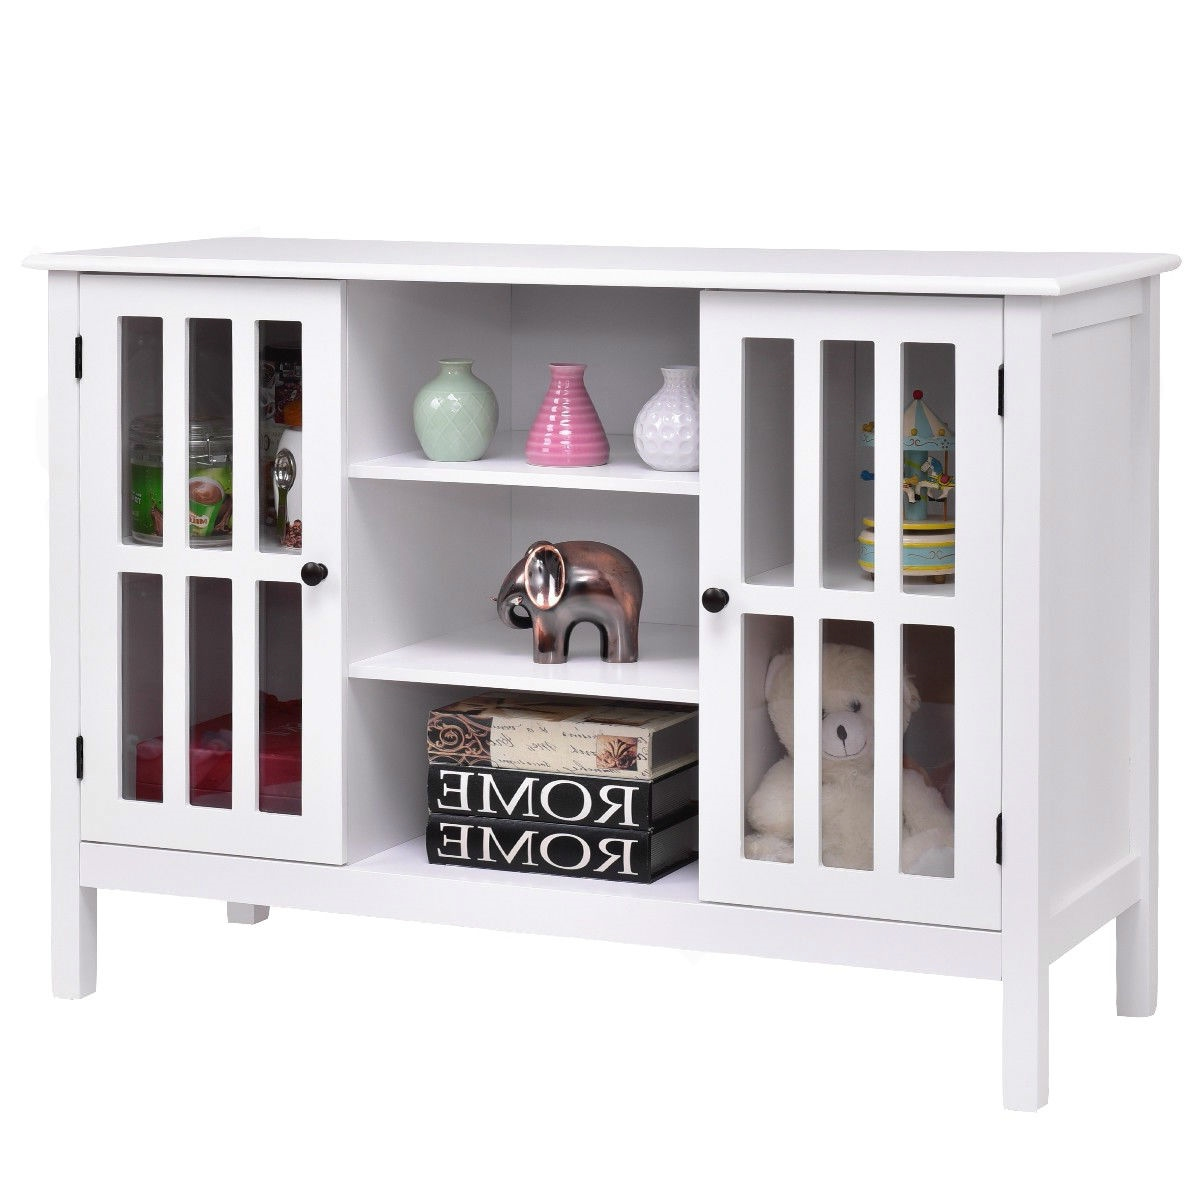 Super White Wood Sofa Table Console Cabinet With Tempered Glass Panel Doors Home Interior And Landscaping Mentranervesignezvosmurscom